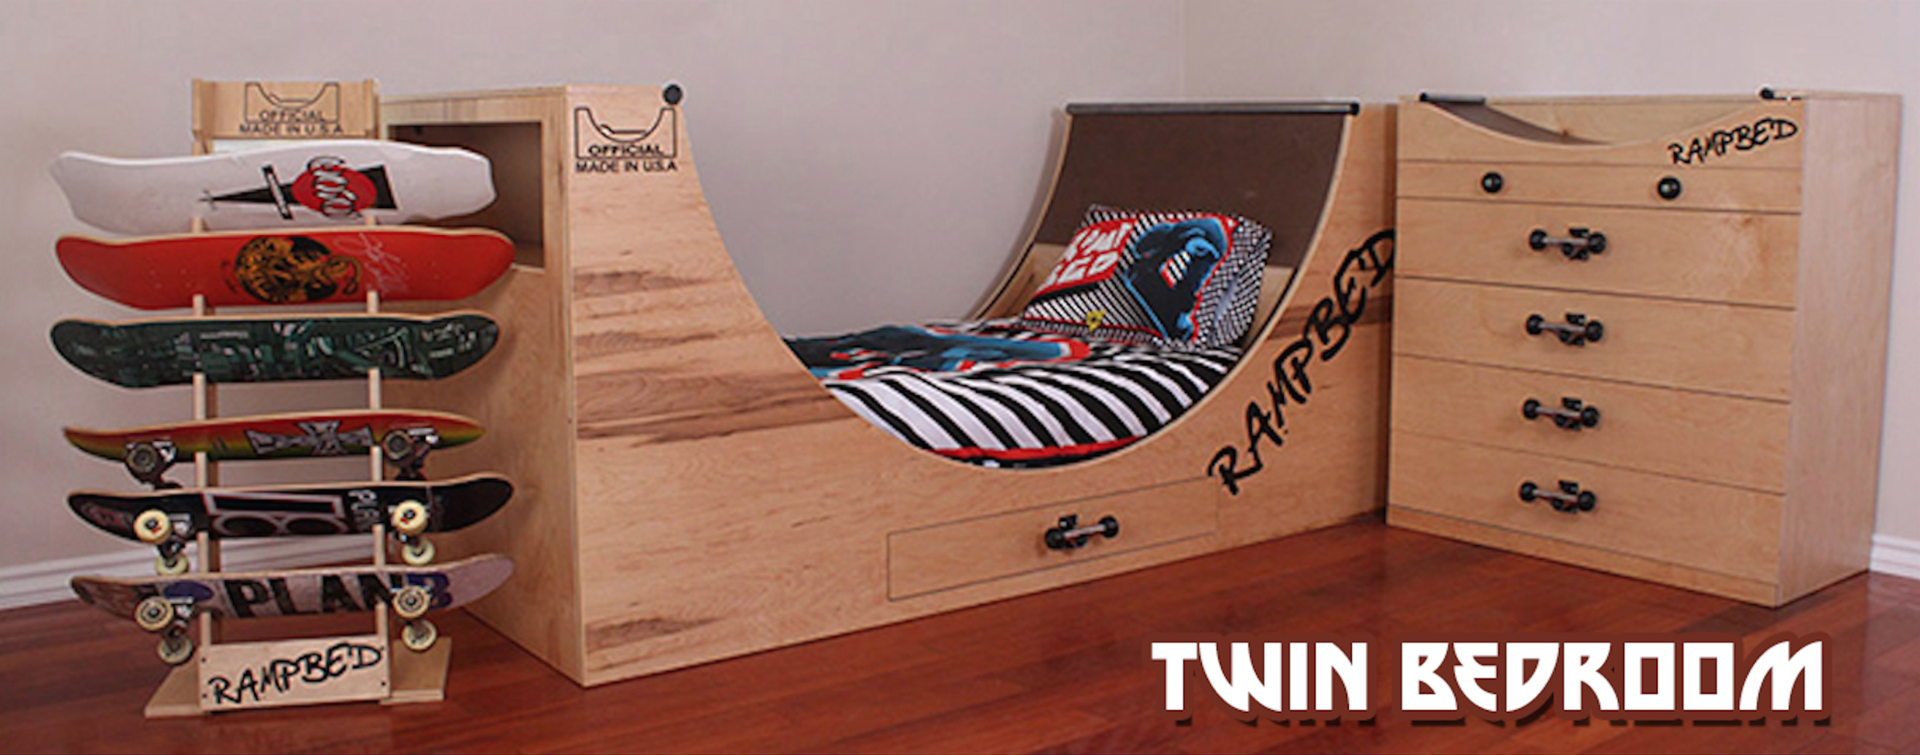 related images. Skateboard bed/room